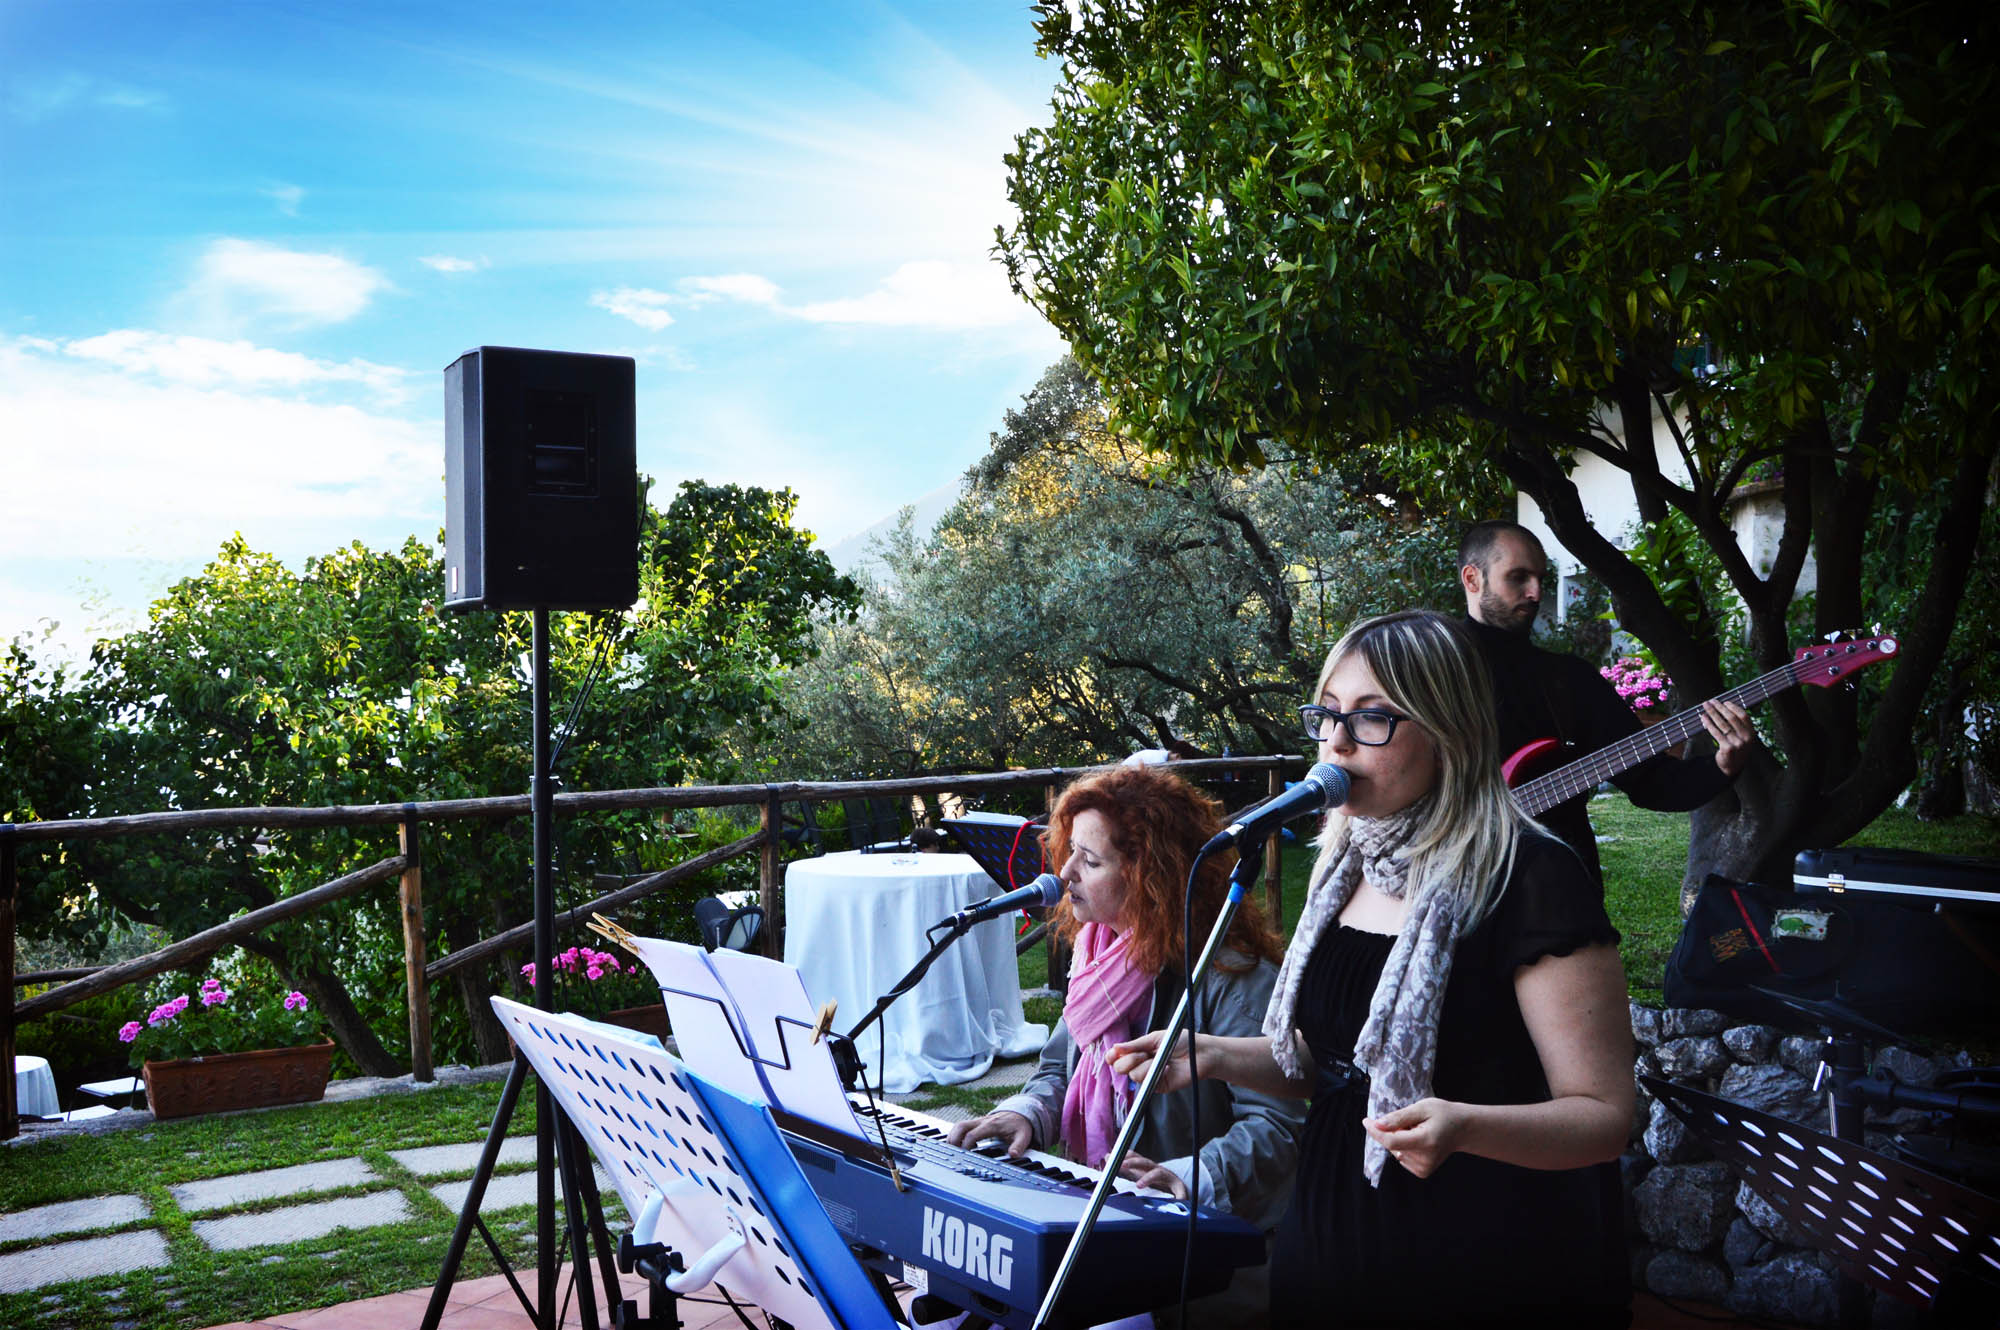 Wedding music band - Band matrimonio -  Italy Amalfi Sorrento Firenze Siena Rome